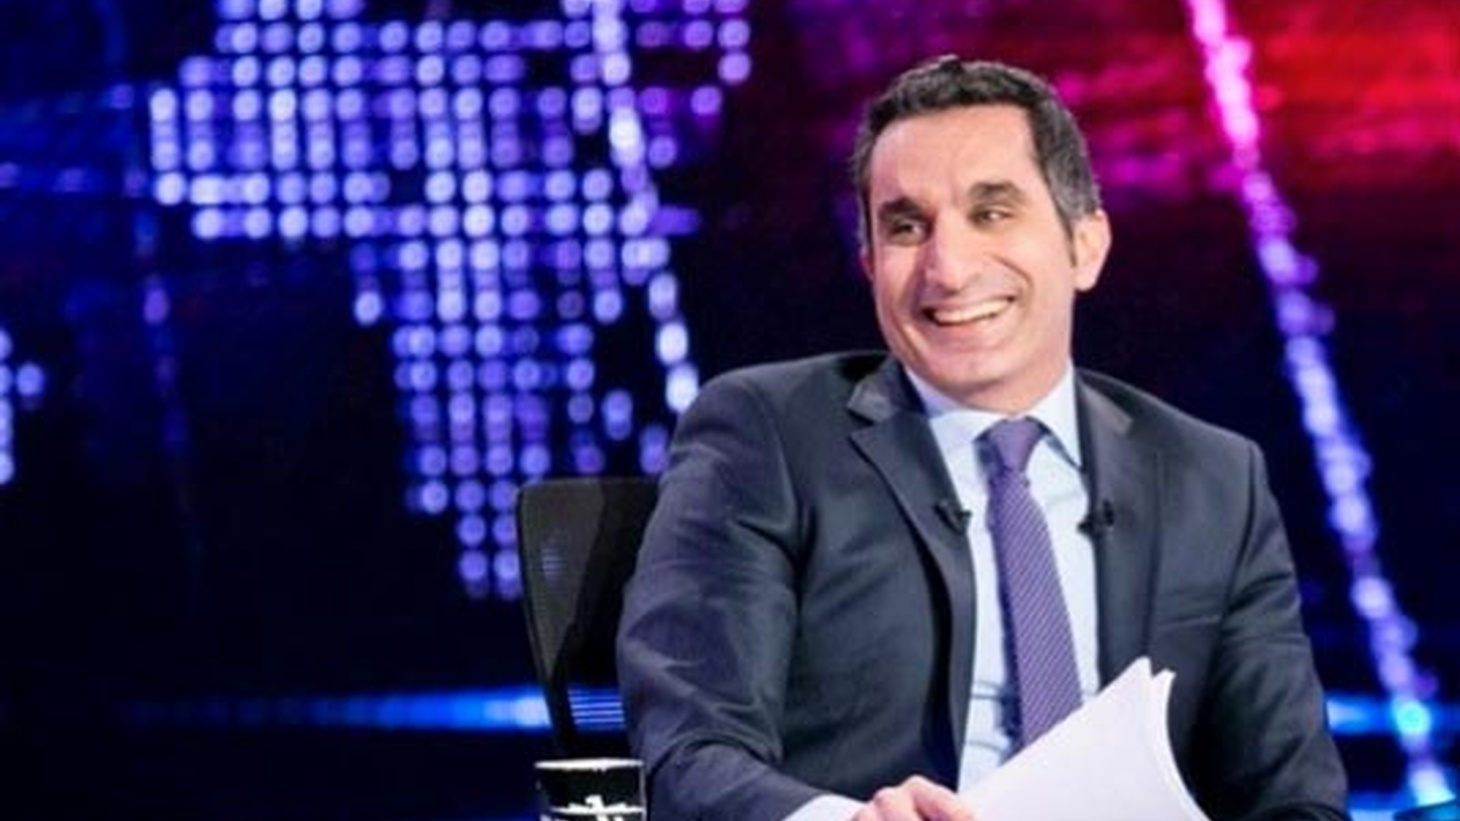 President Trump met with Egypt's president this week. We get reaction from comedian Bassem Youssef, who launched the first political satire show in Egypt. But for making fun of those in power, his safety was threatened, and he had to cancel the show. He ended up fleeing the country after President Abdel Fattah el-Sisi came to power.